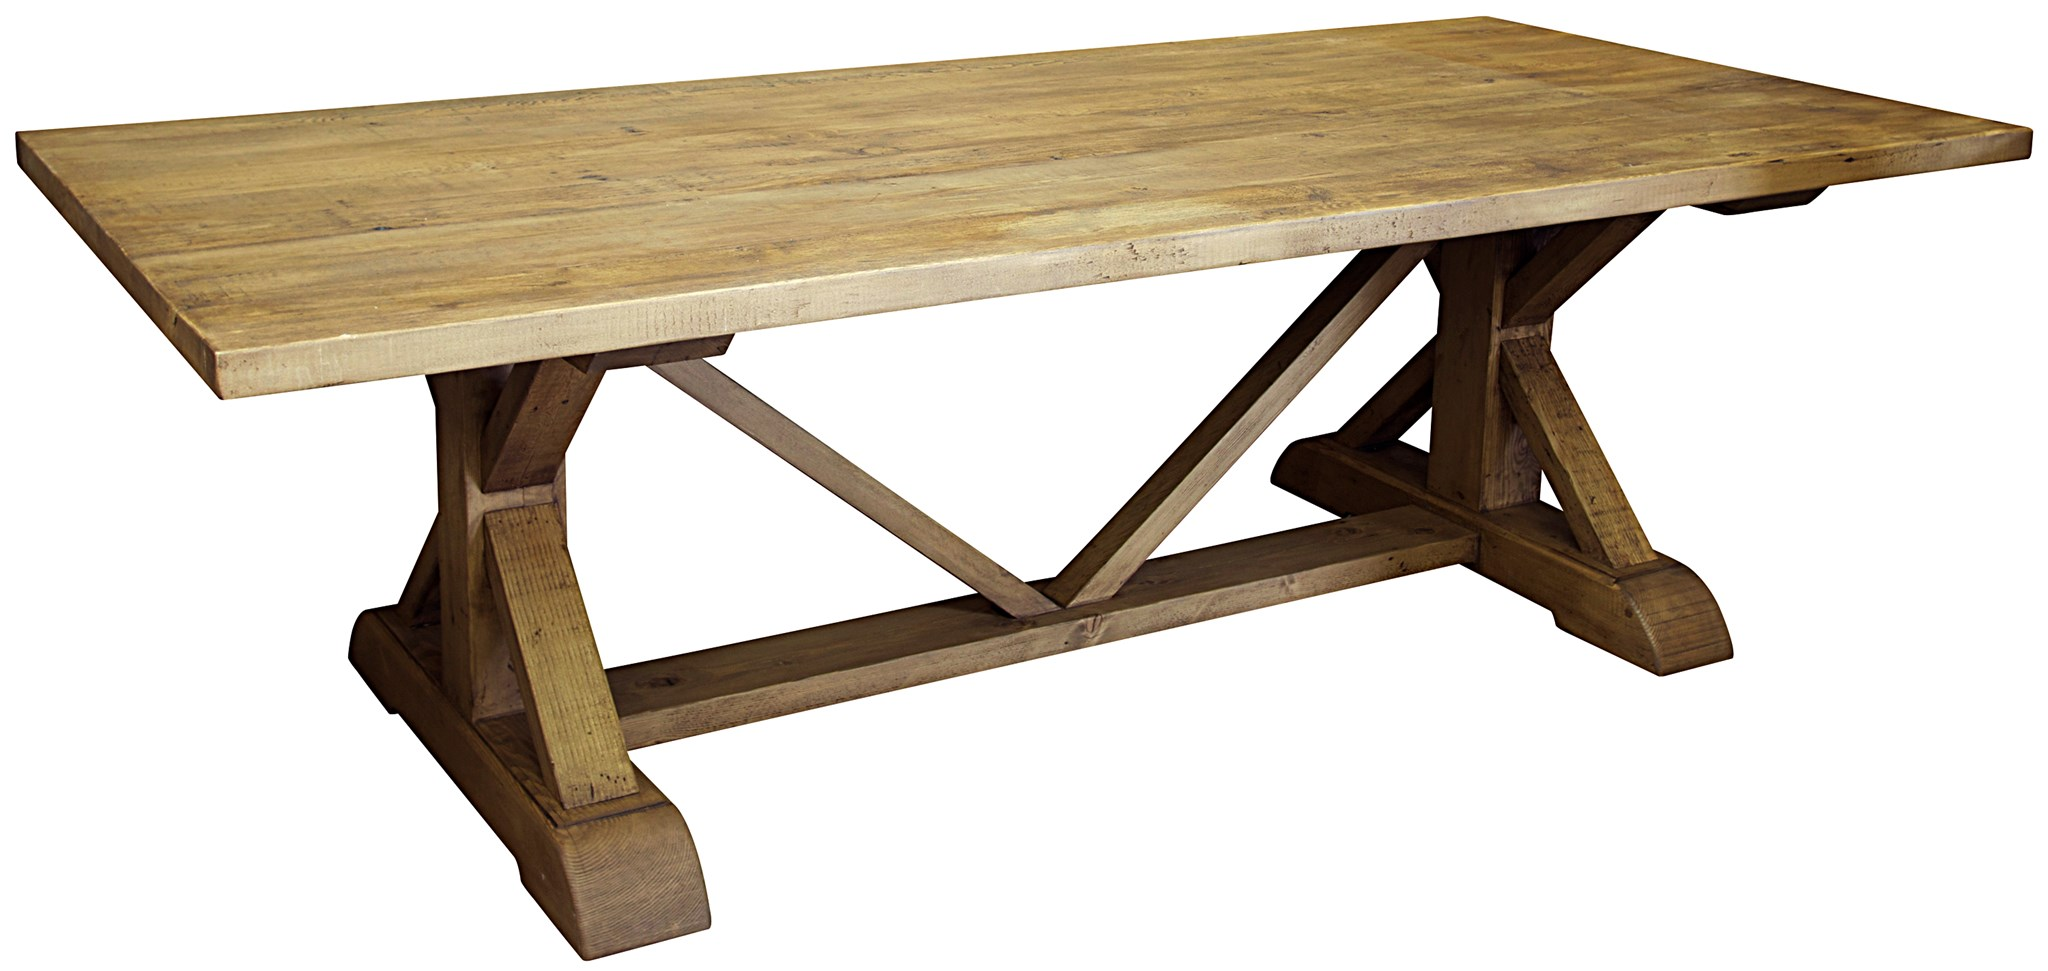 Reclaimed Lumber X Dining Table